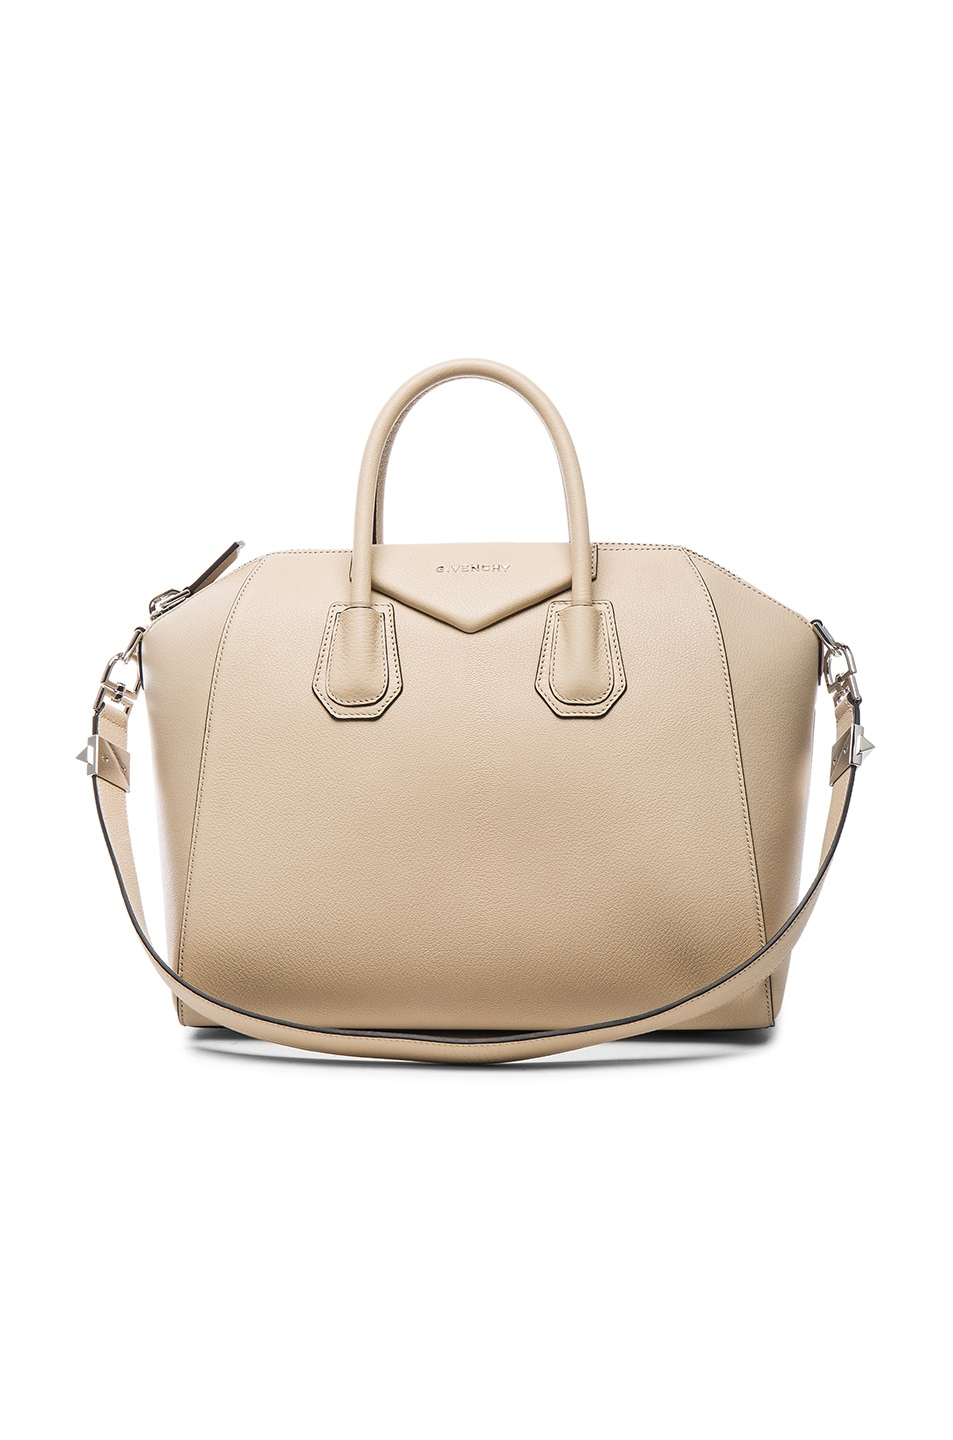 Image 1 of Givenchy Medium Antigona in Beige Buff